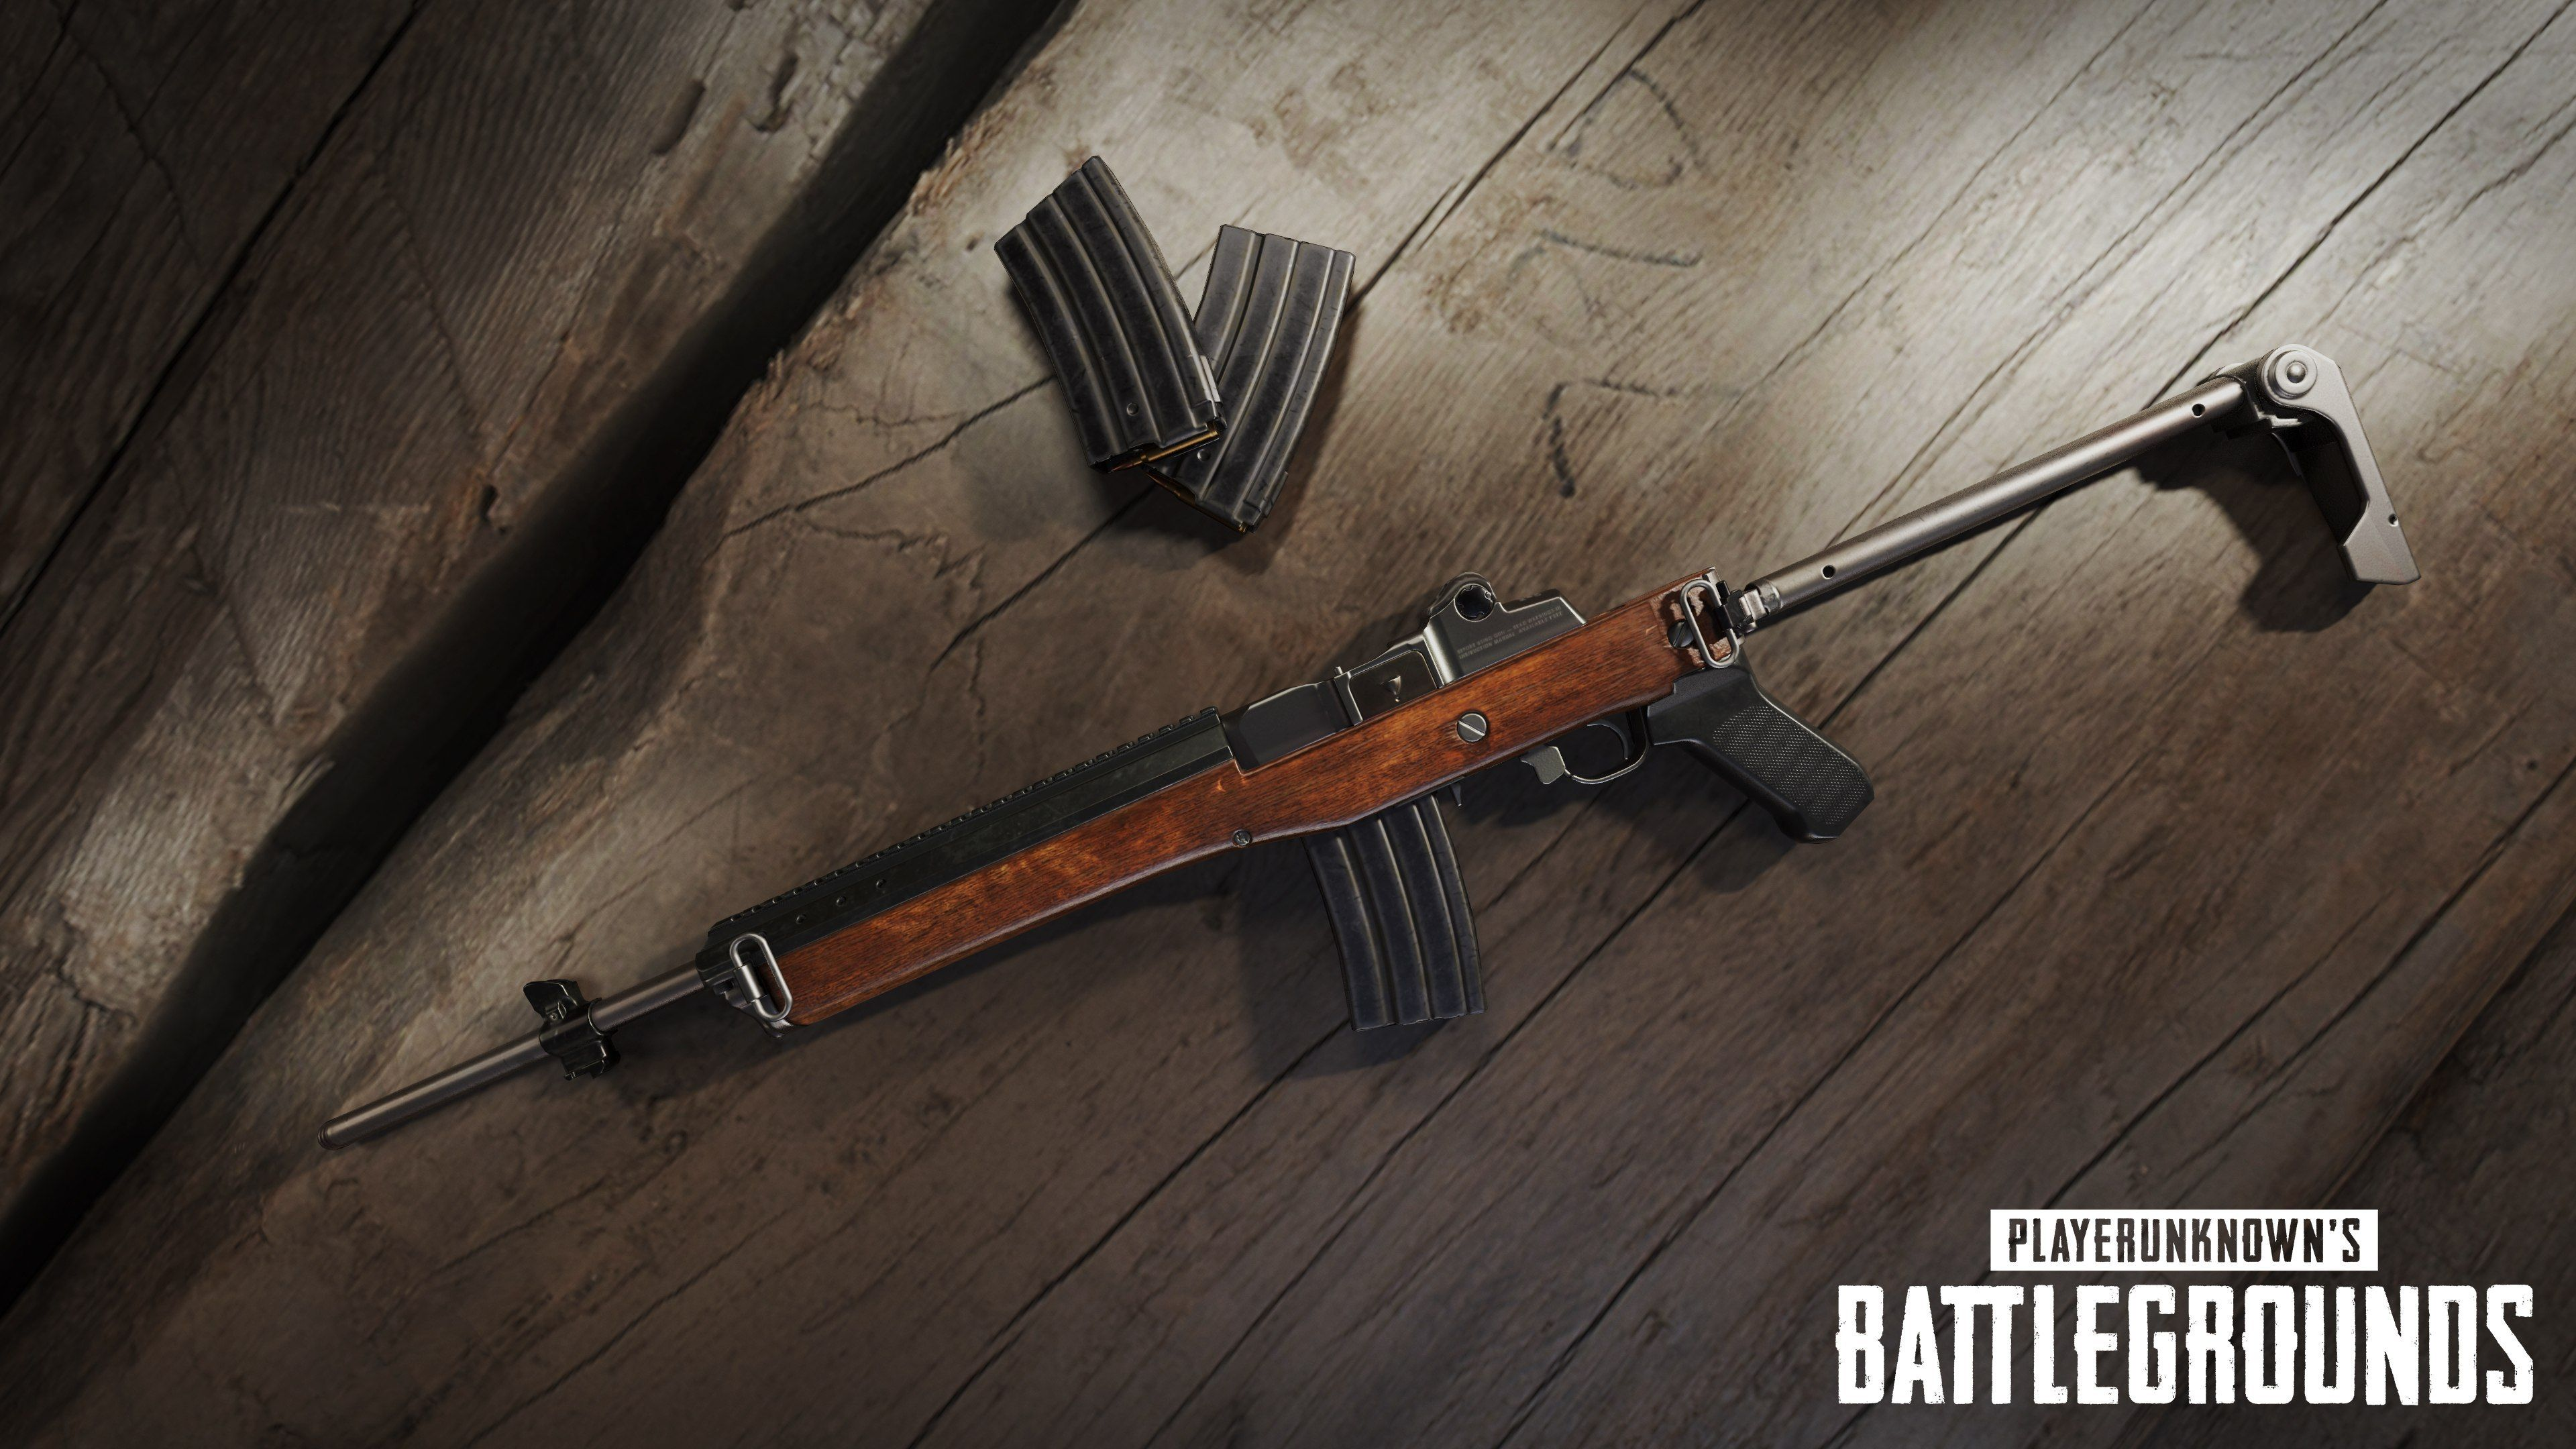 4k Ultra Hd Playerunknowns Battlegrounds Wallpaperspubg